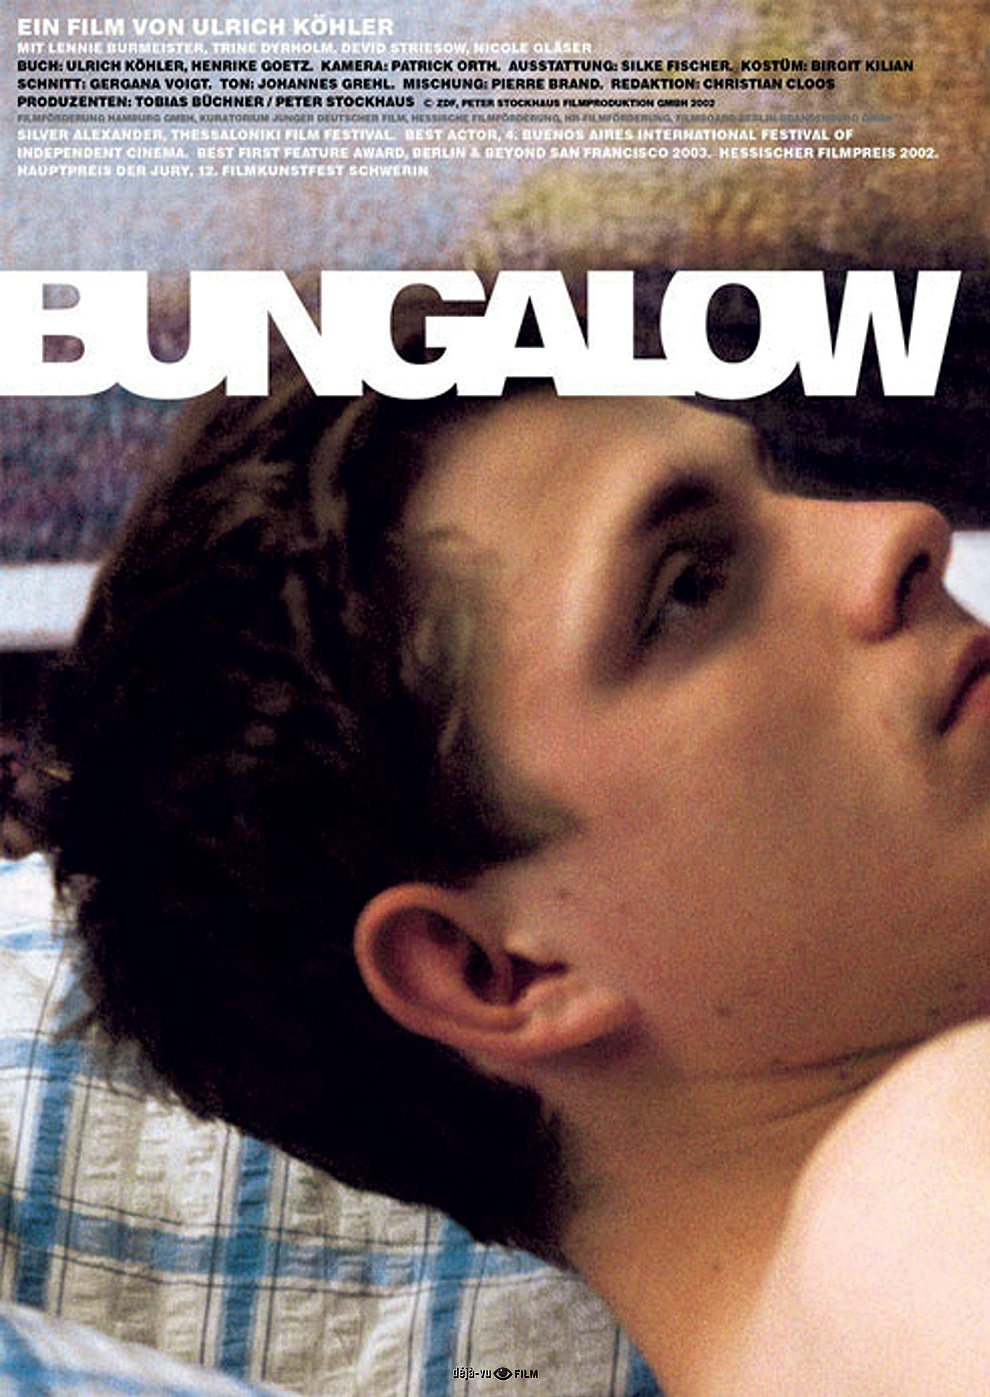 Bungalow (Poster)